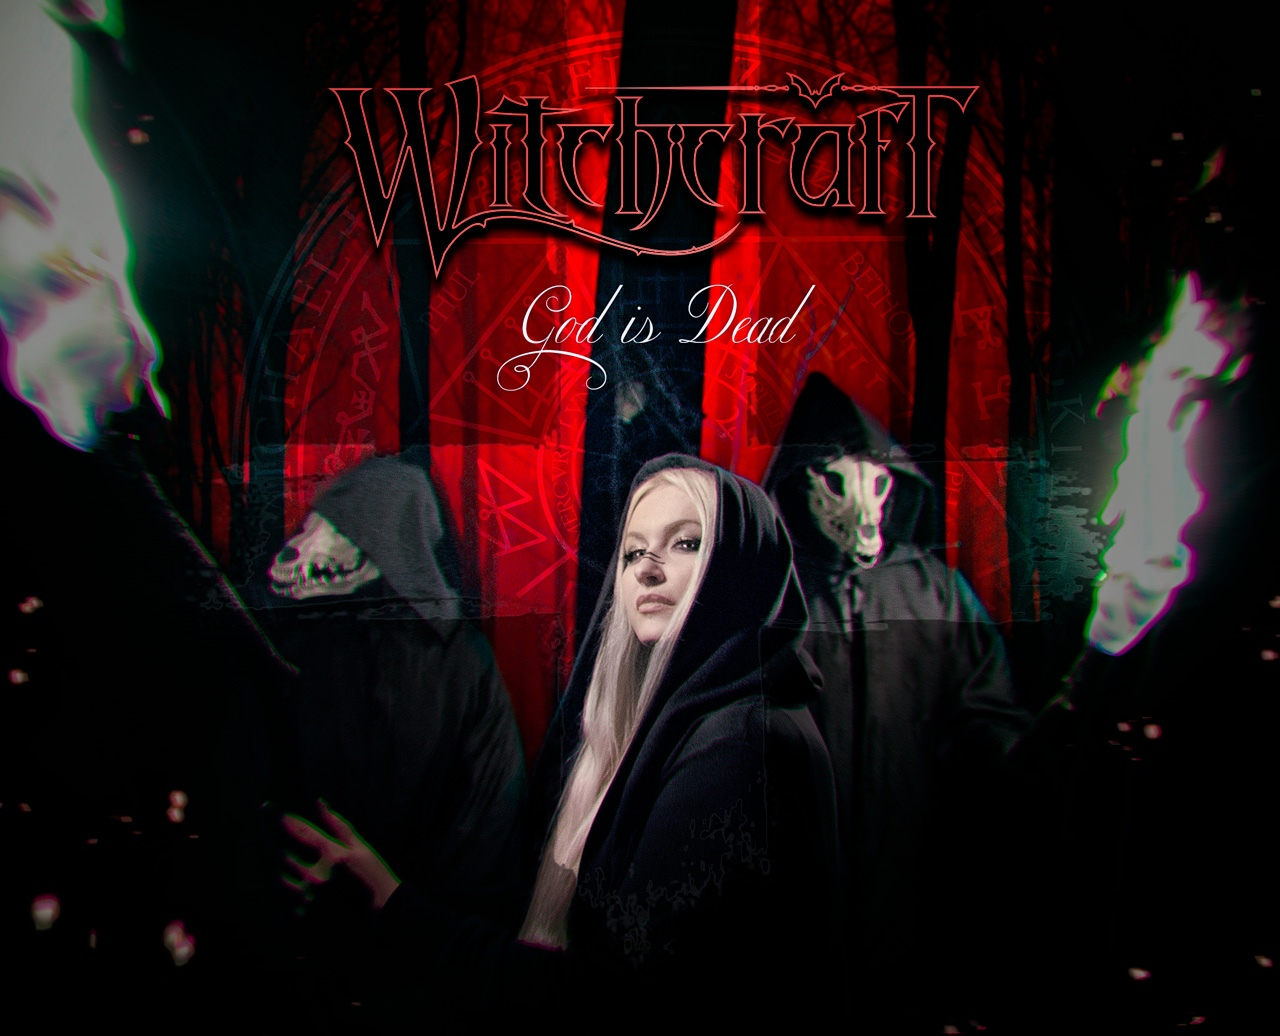 Witchcraft - God Is Dead (Single) (2019)